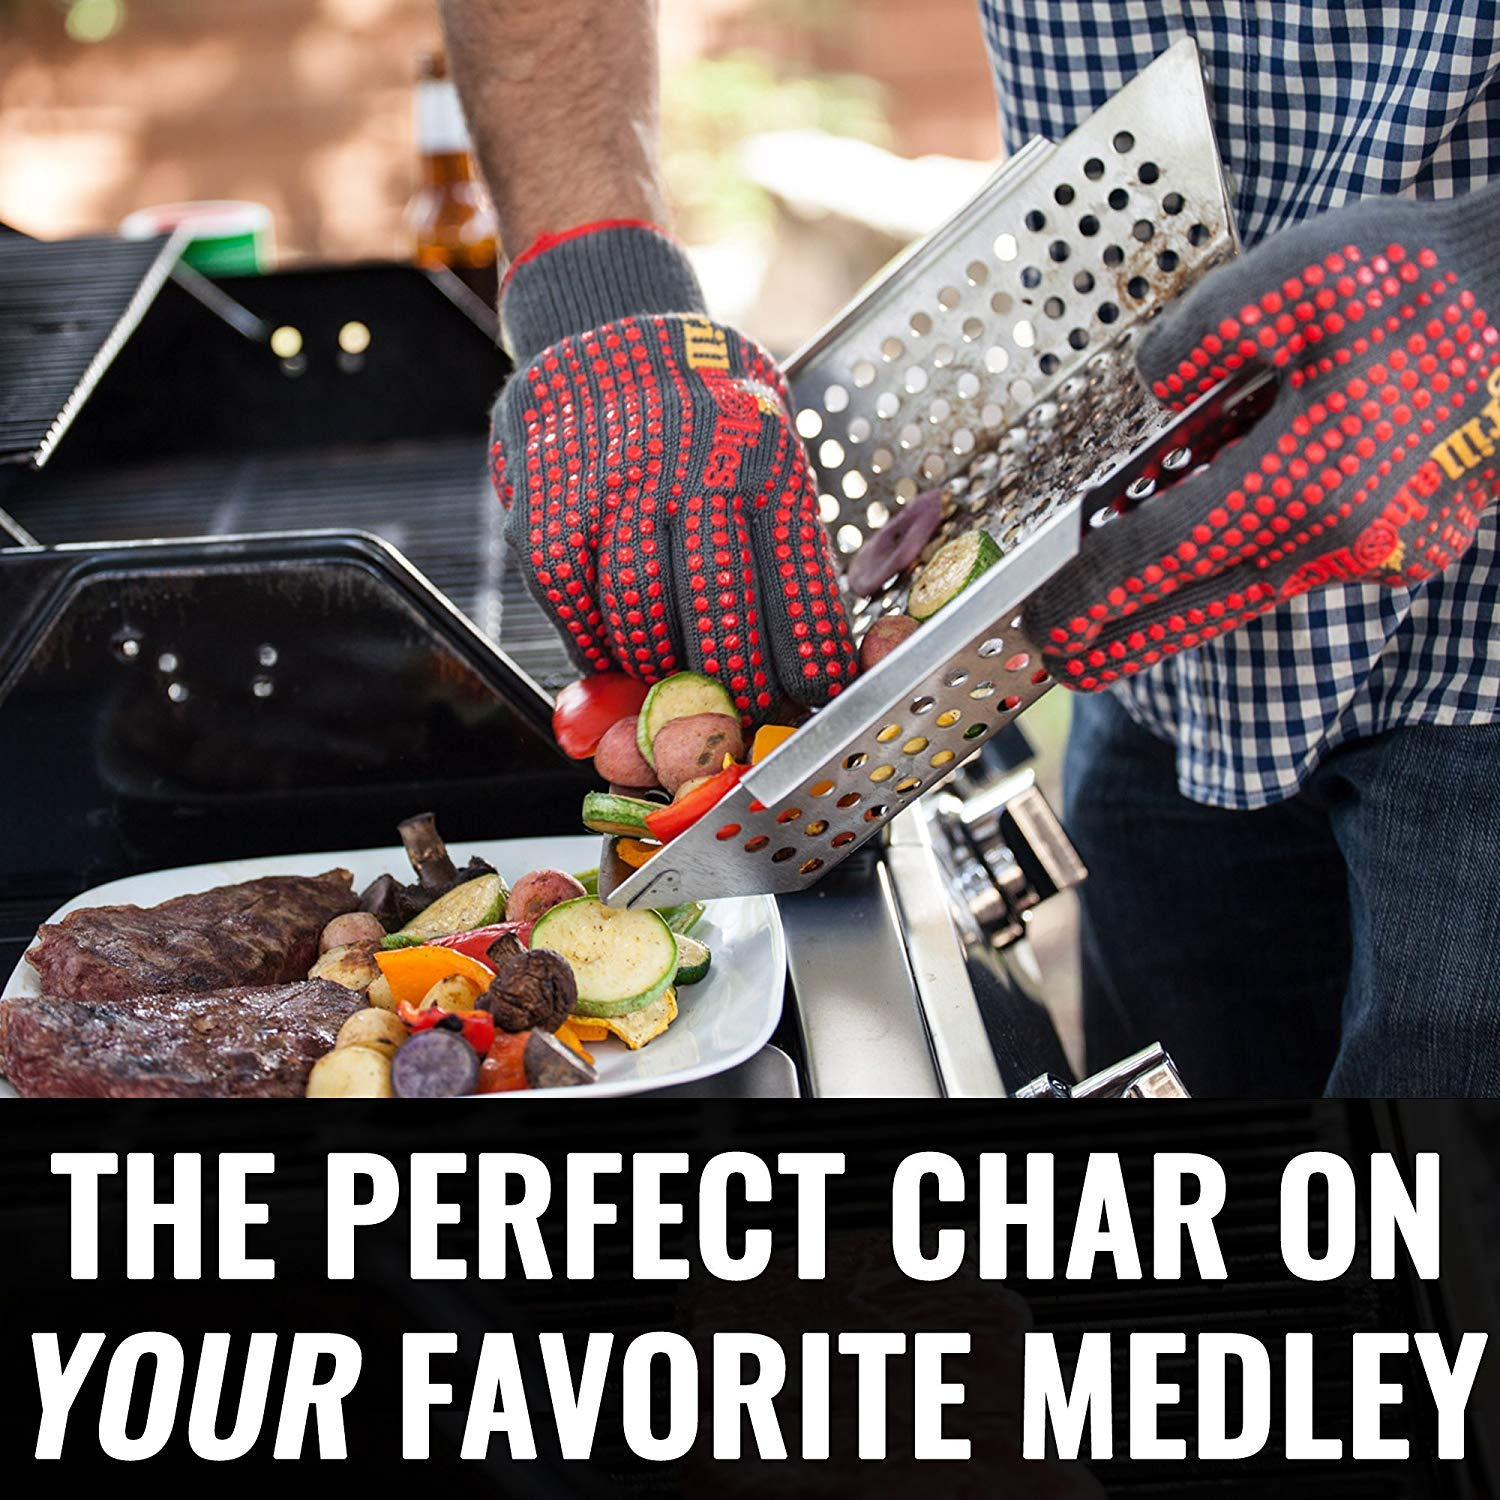 Grillaholics Grill Basket - Large Grilling Basket for More Vegetables - Heavy Duty Stainless Steel Grilling Accessories Built to Last - Perfect Vegetable Grill Basket for All Grills and Veggies by Grillaholics (Image #7)